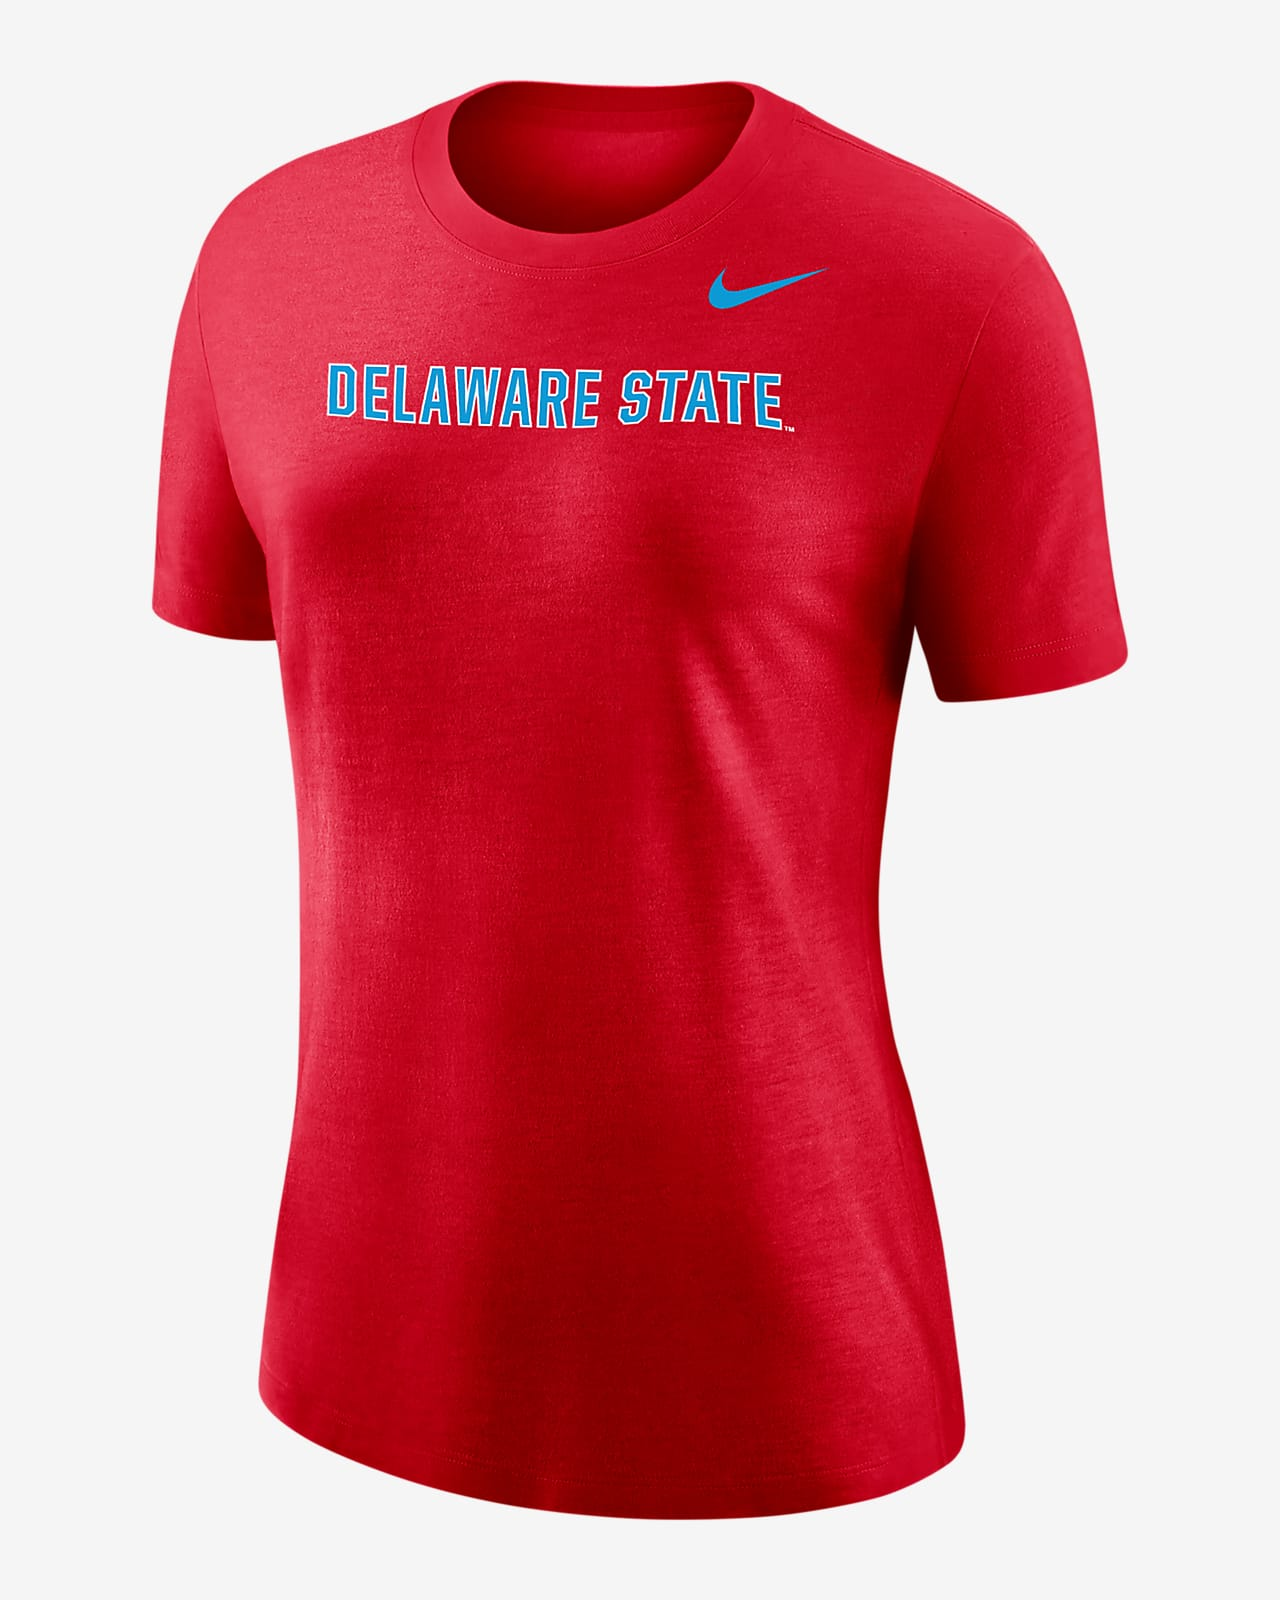 Nike College (Delaware State) Women's T-Shirt